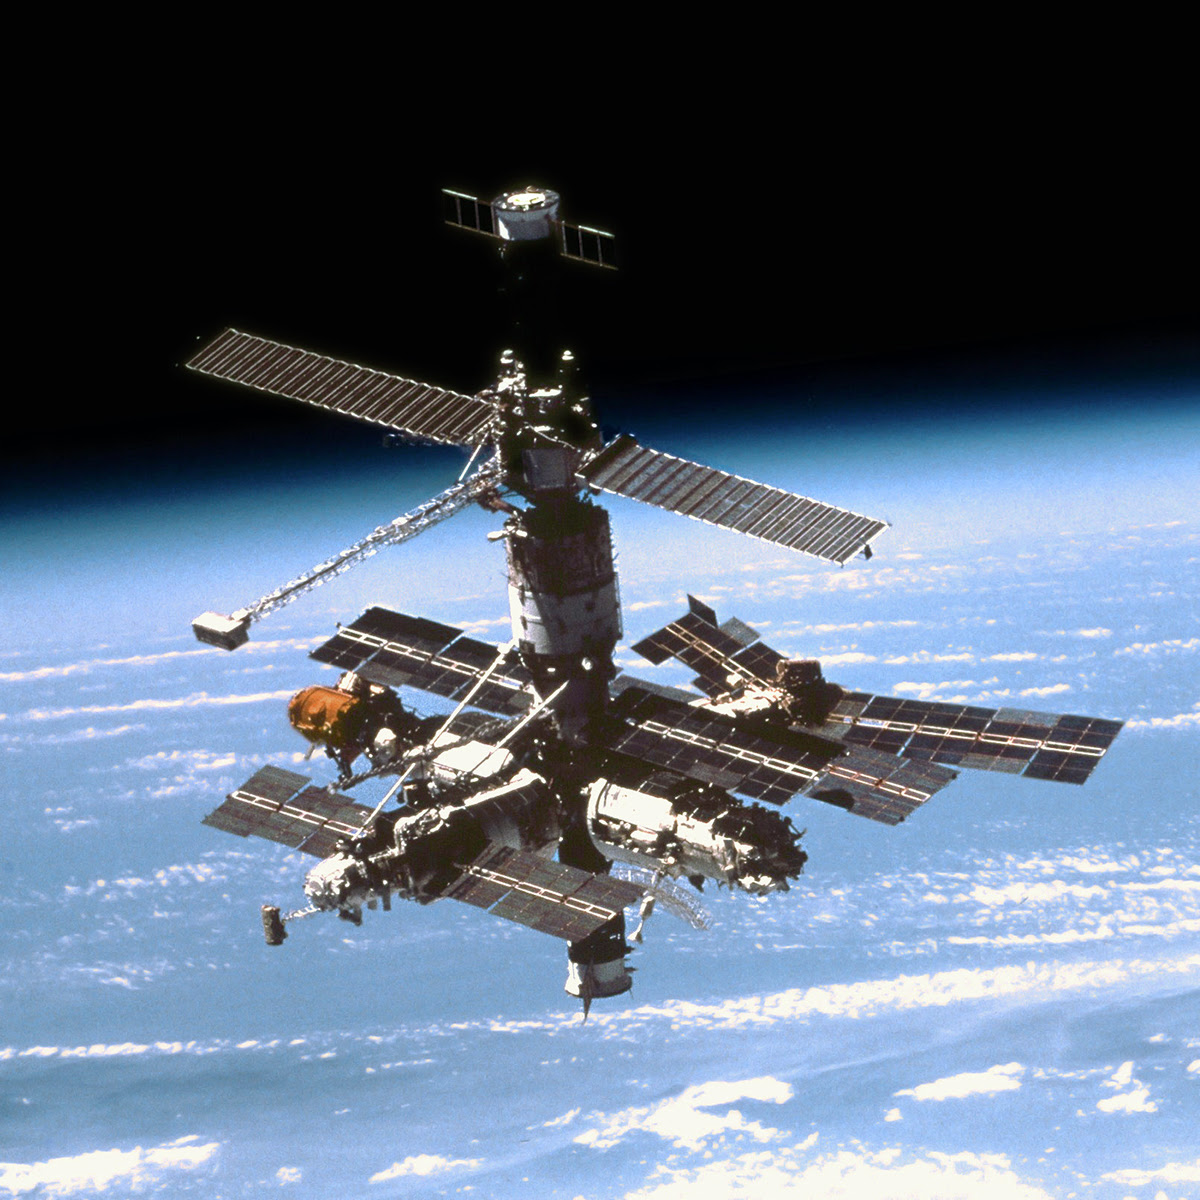 On This Day in Space! May 31, 1990: Kristall module launches to Mir Space Station